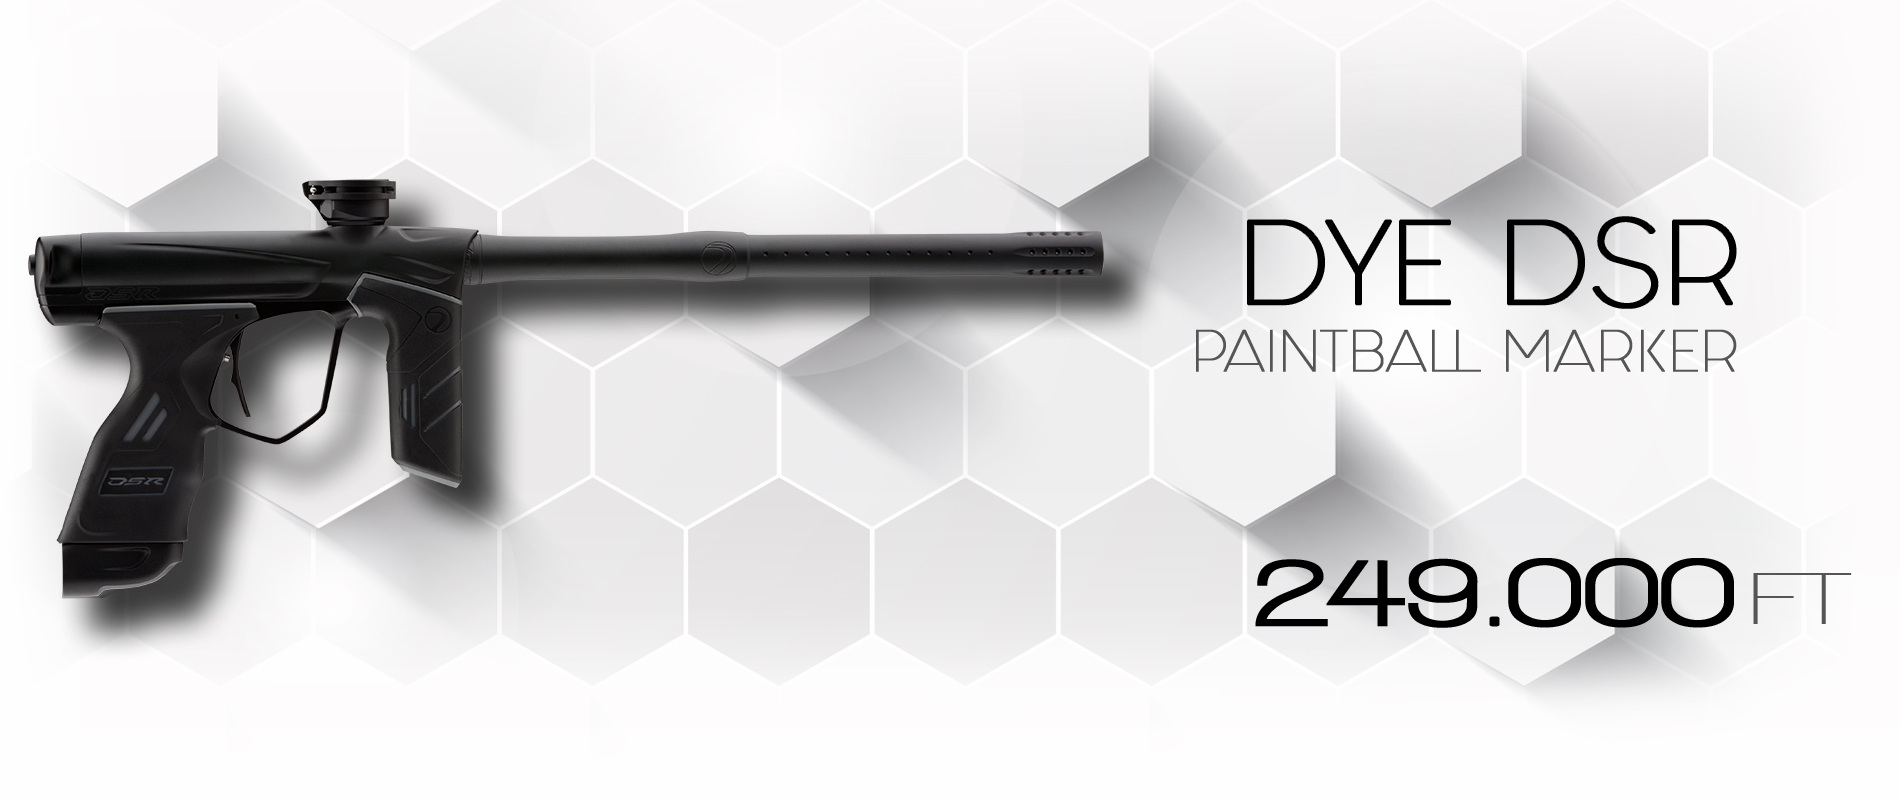 Dye DSR paintball marker